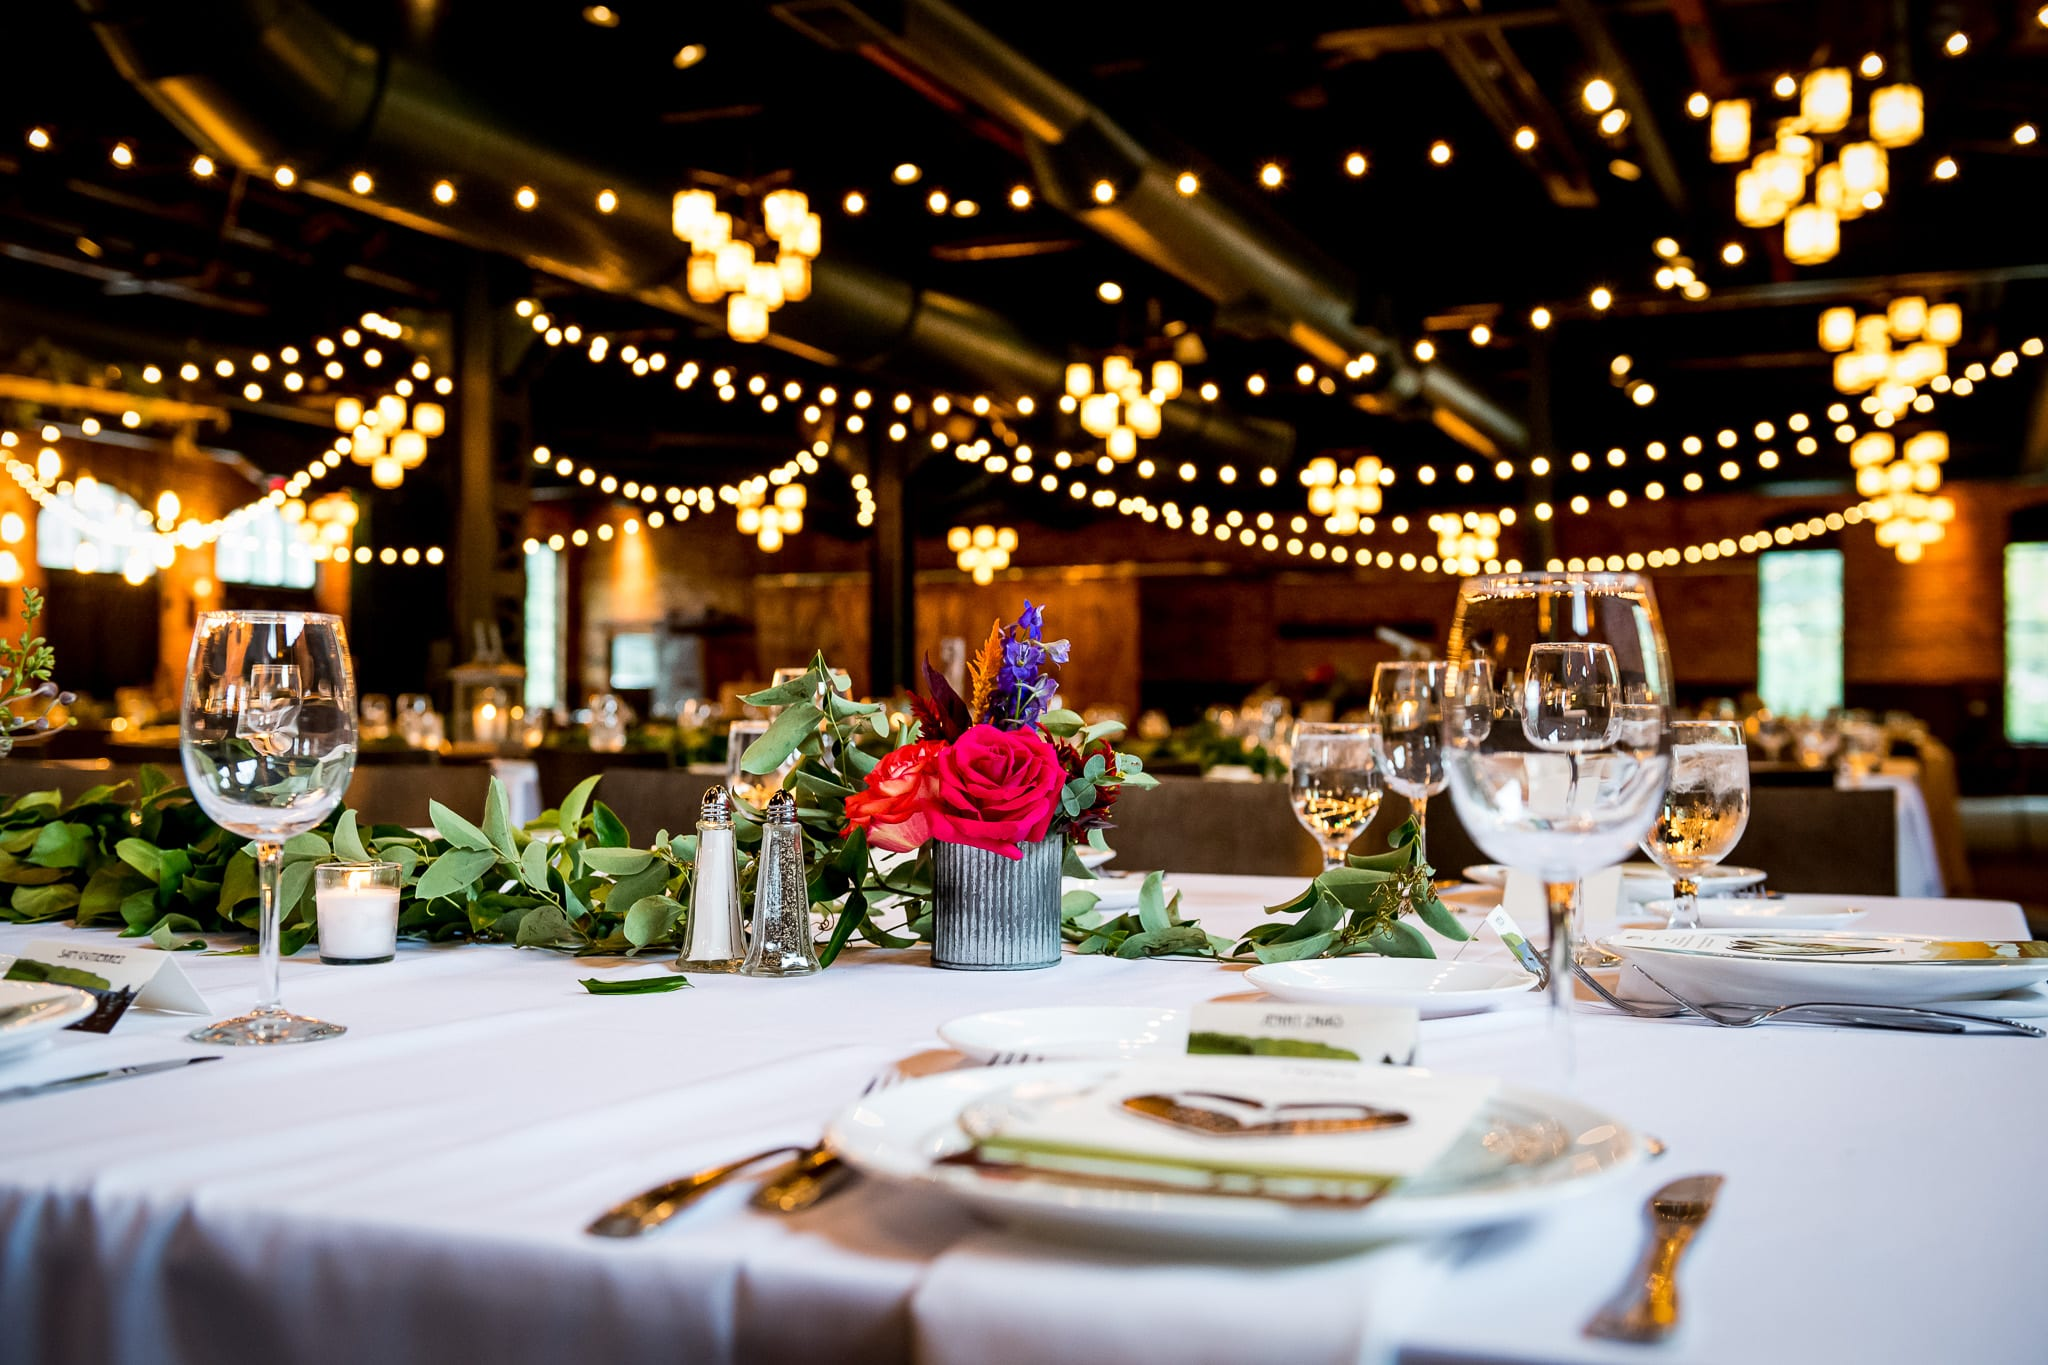 Gorgeous table setting during a wedding inside of the Nicollet Island Pavilion